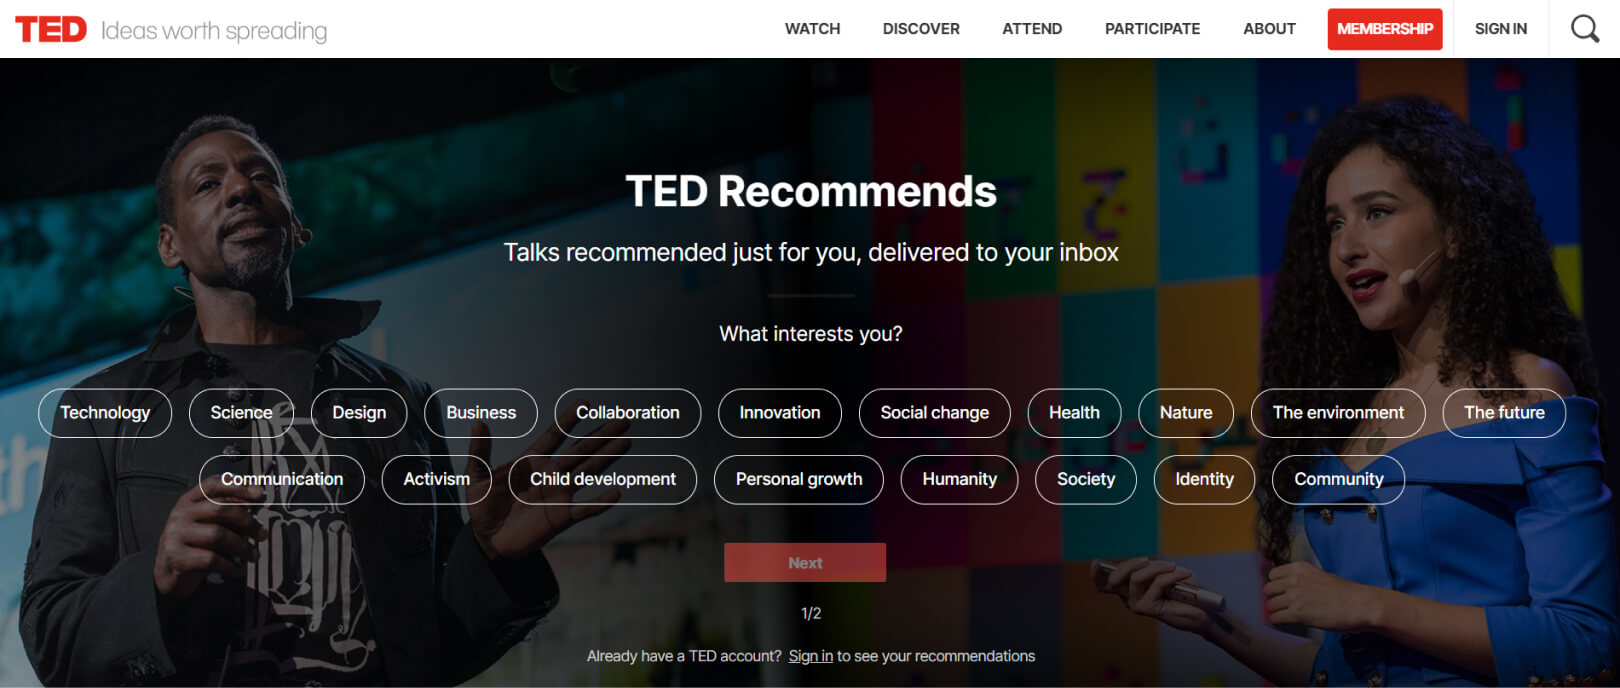 Ted homepage